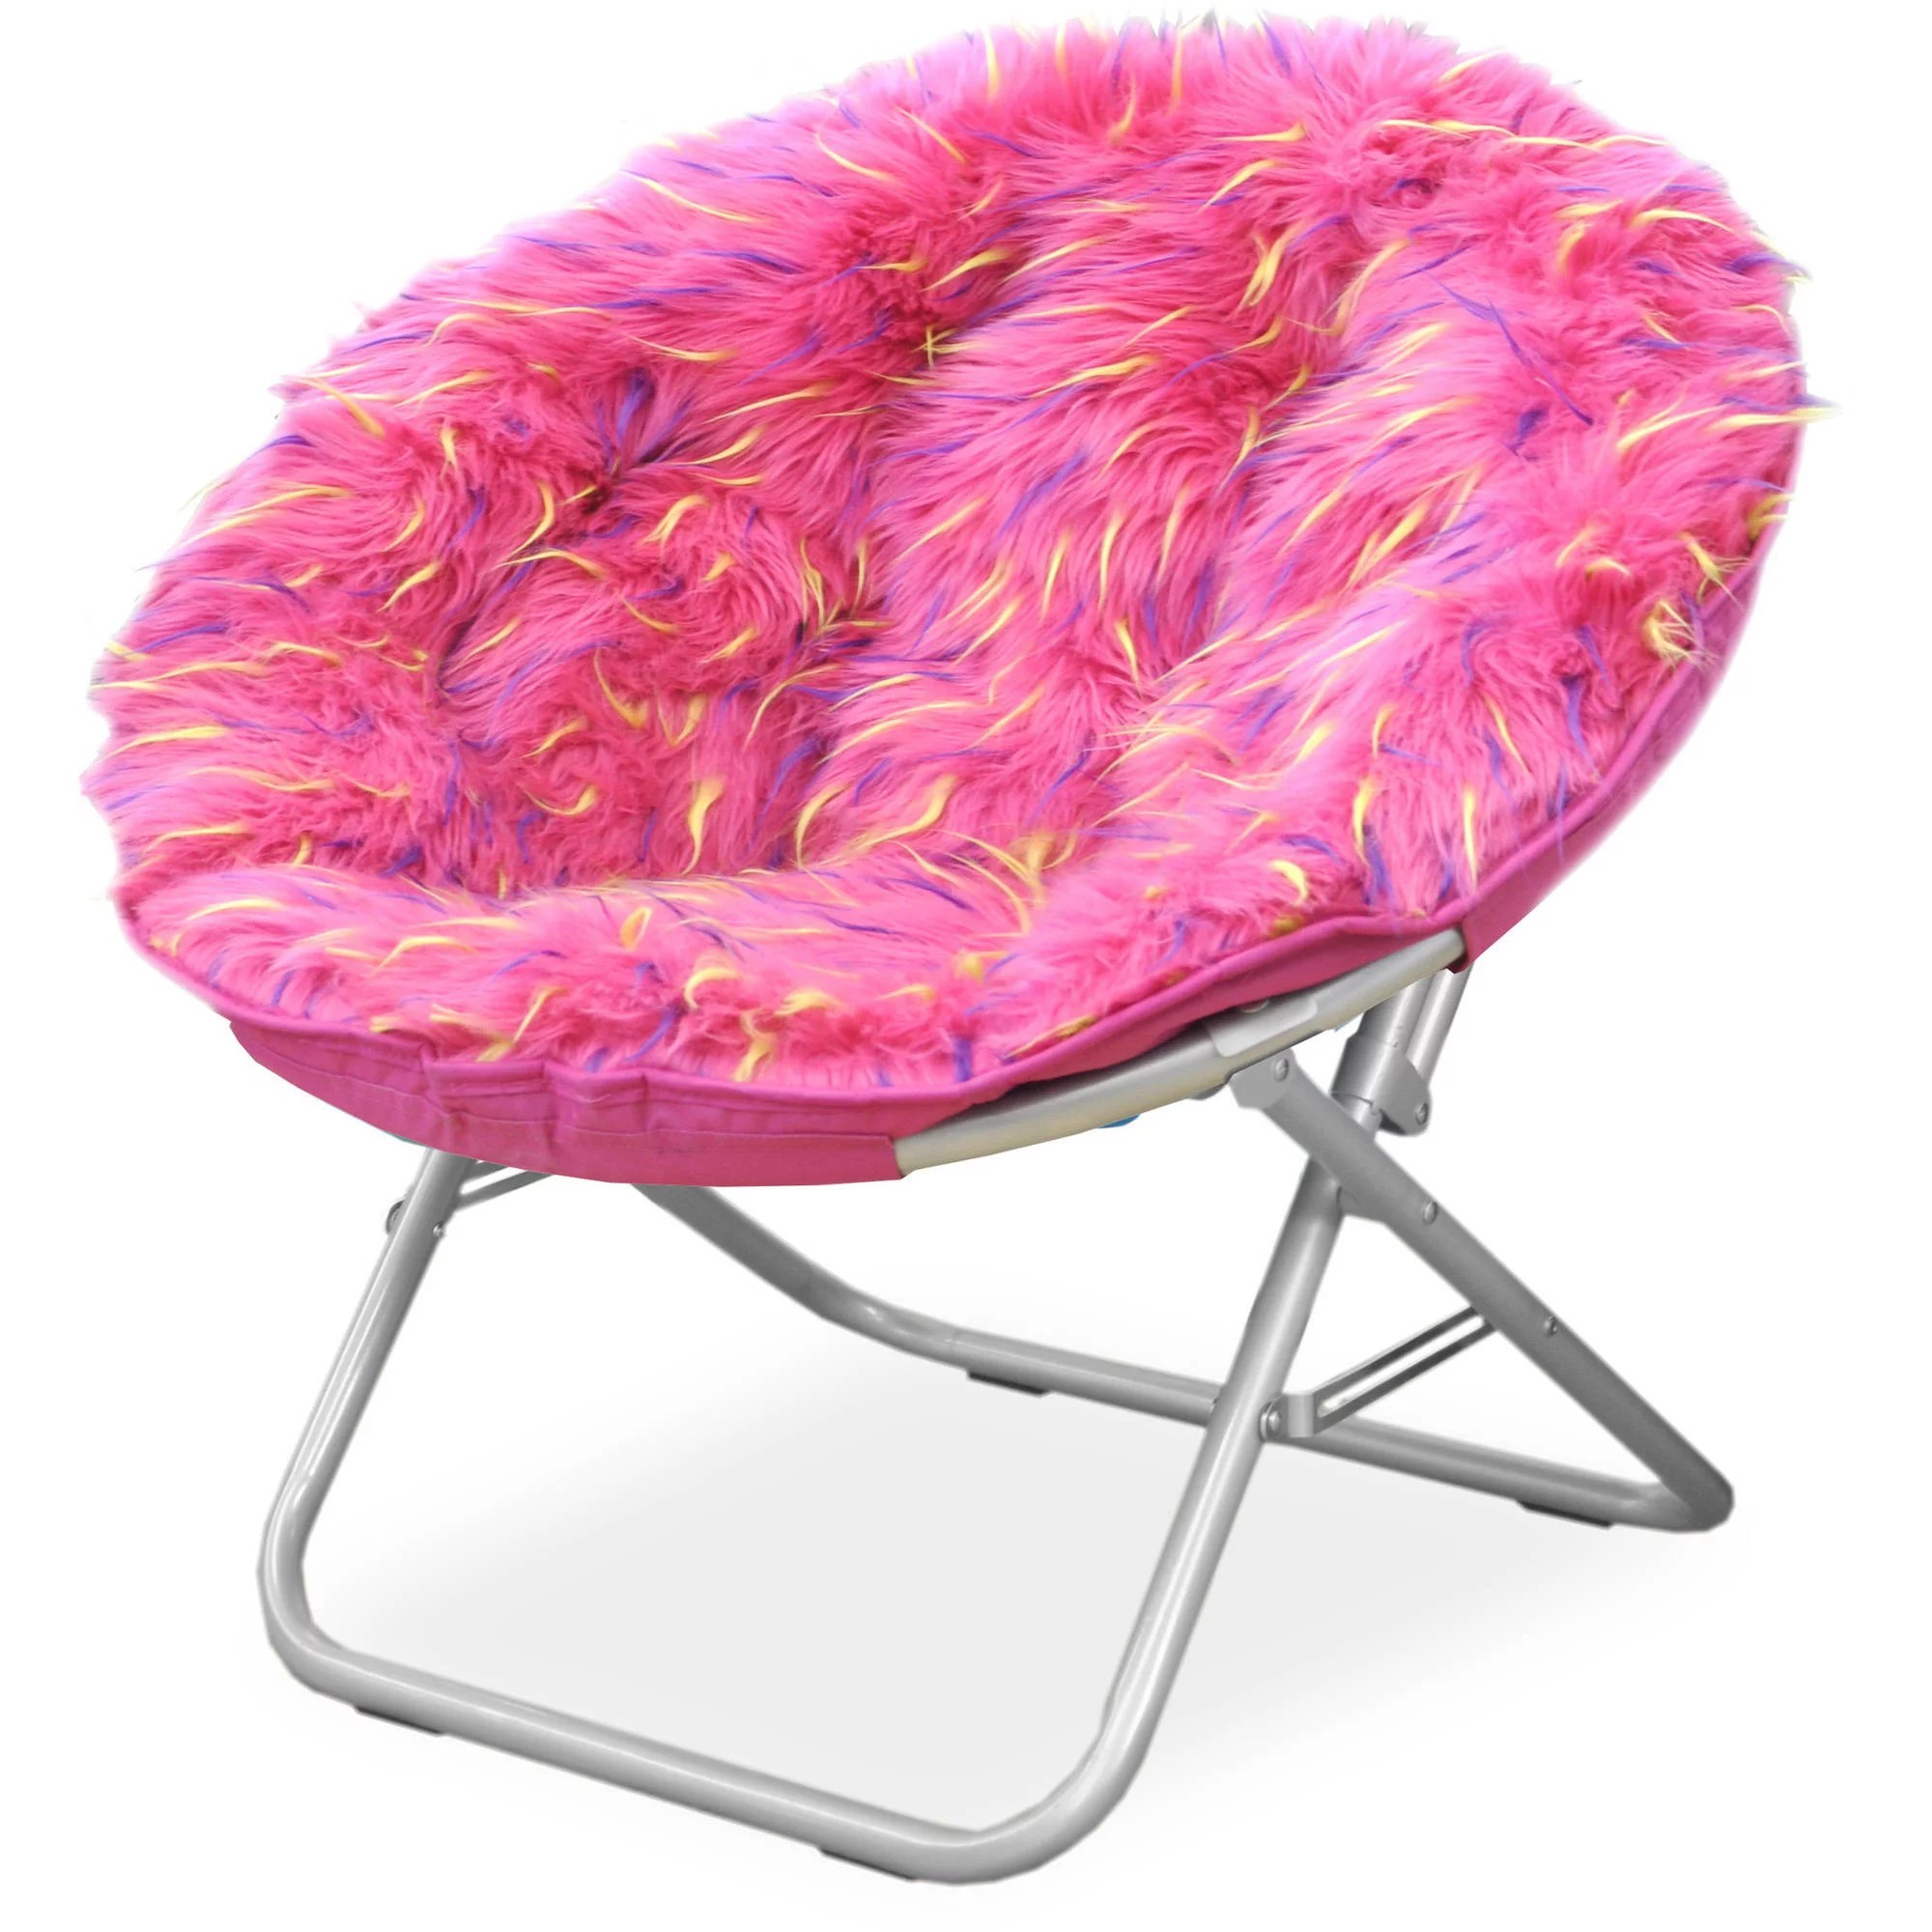 saucer chair for kids bergere chairs sale your zone spiker faux fur multiple colors walmart com